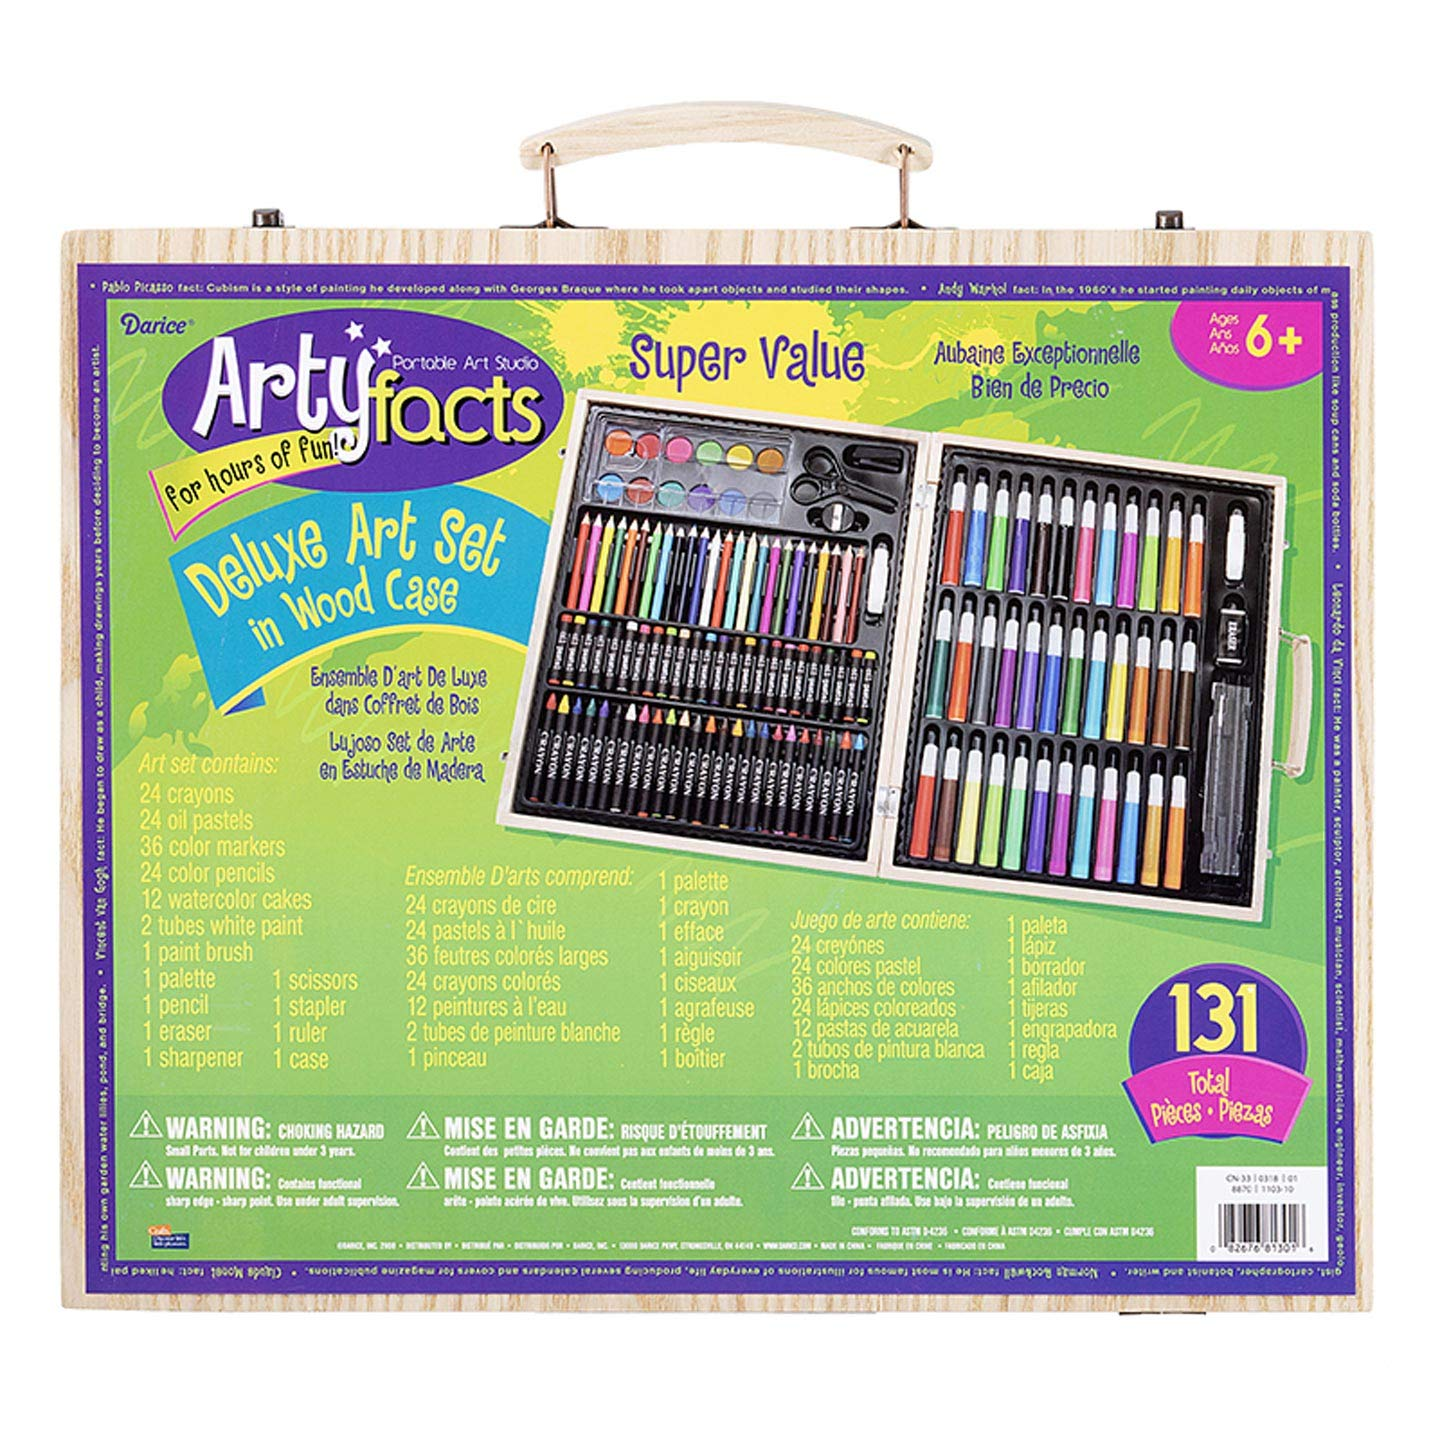 Darice (1103-10) 131-Piece Premium Art Set - Art Supplies for Drawing, Painting and More in a Wood Case - Makes a Great Gift for Children and Adults by Darice